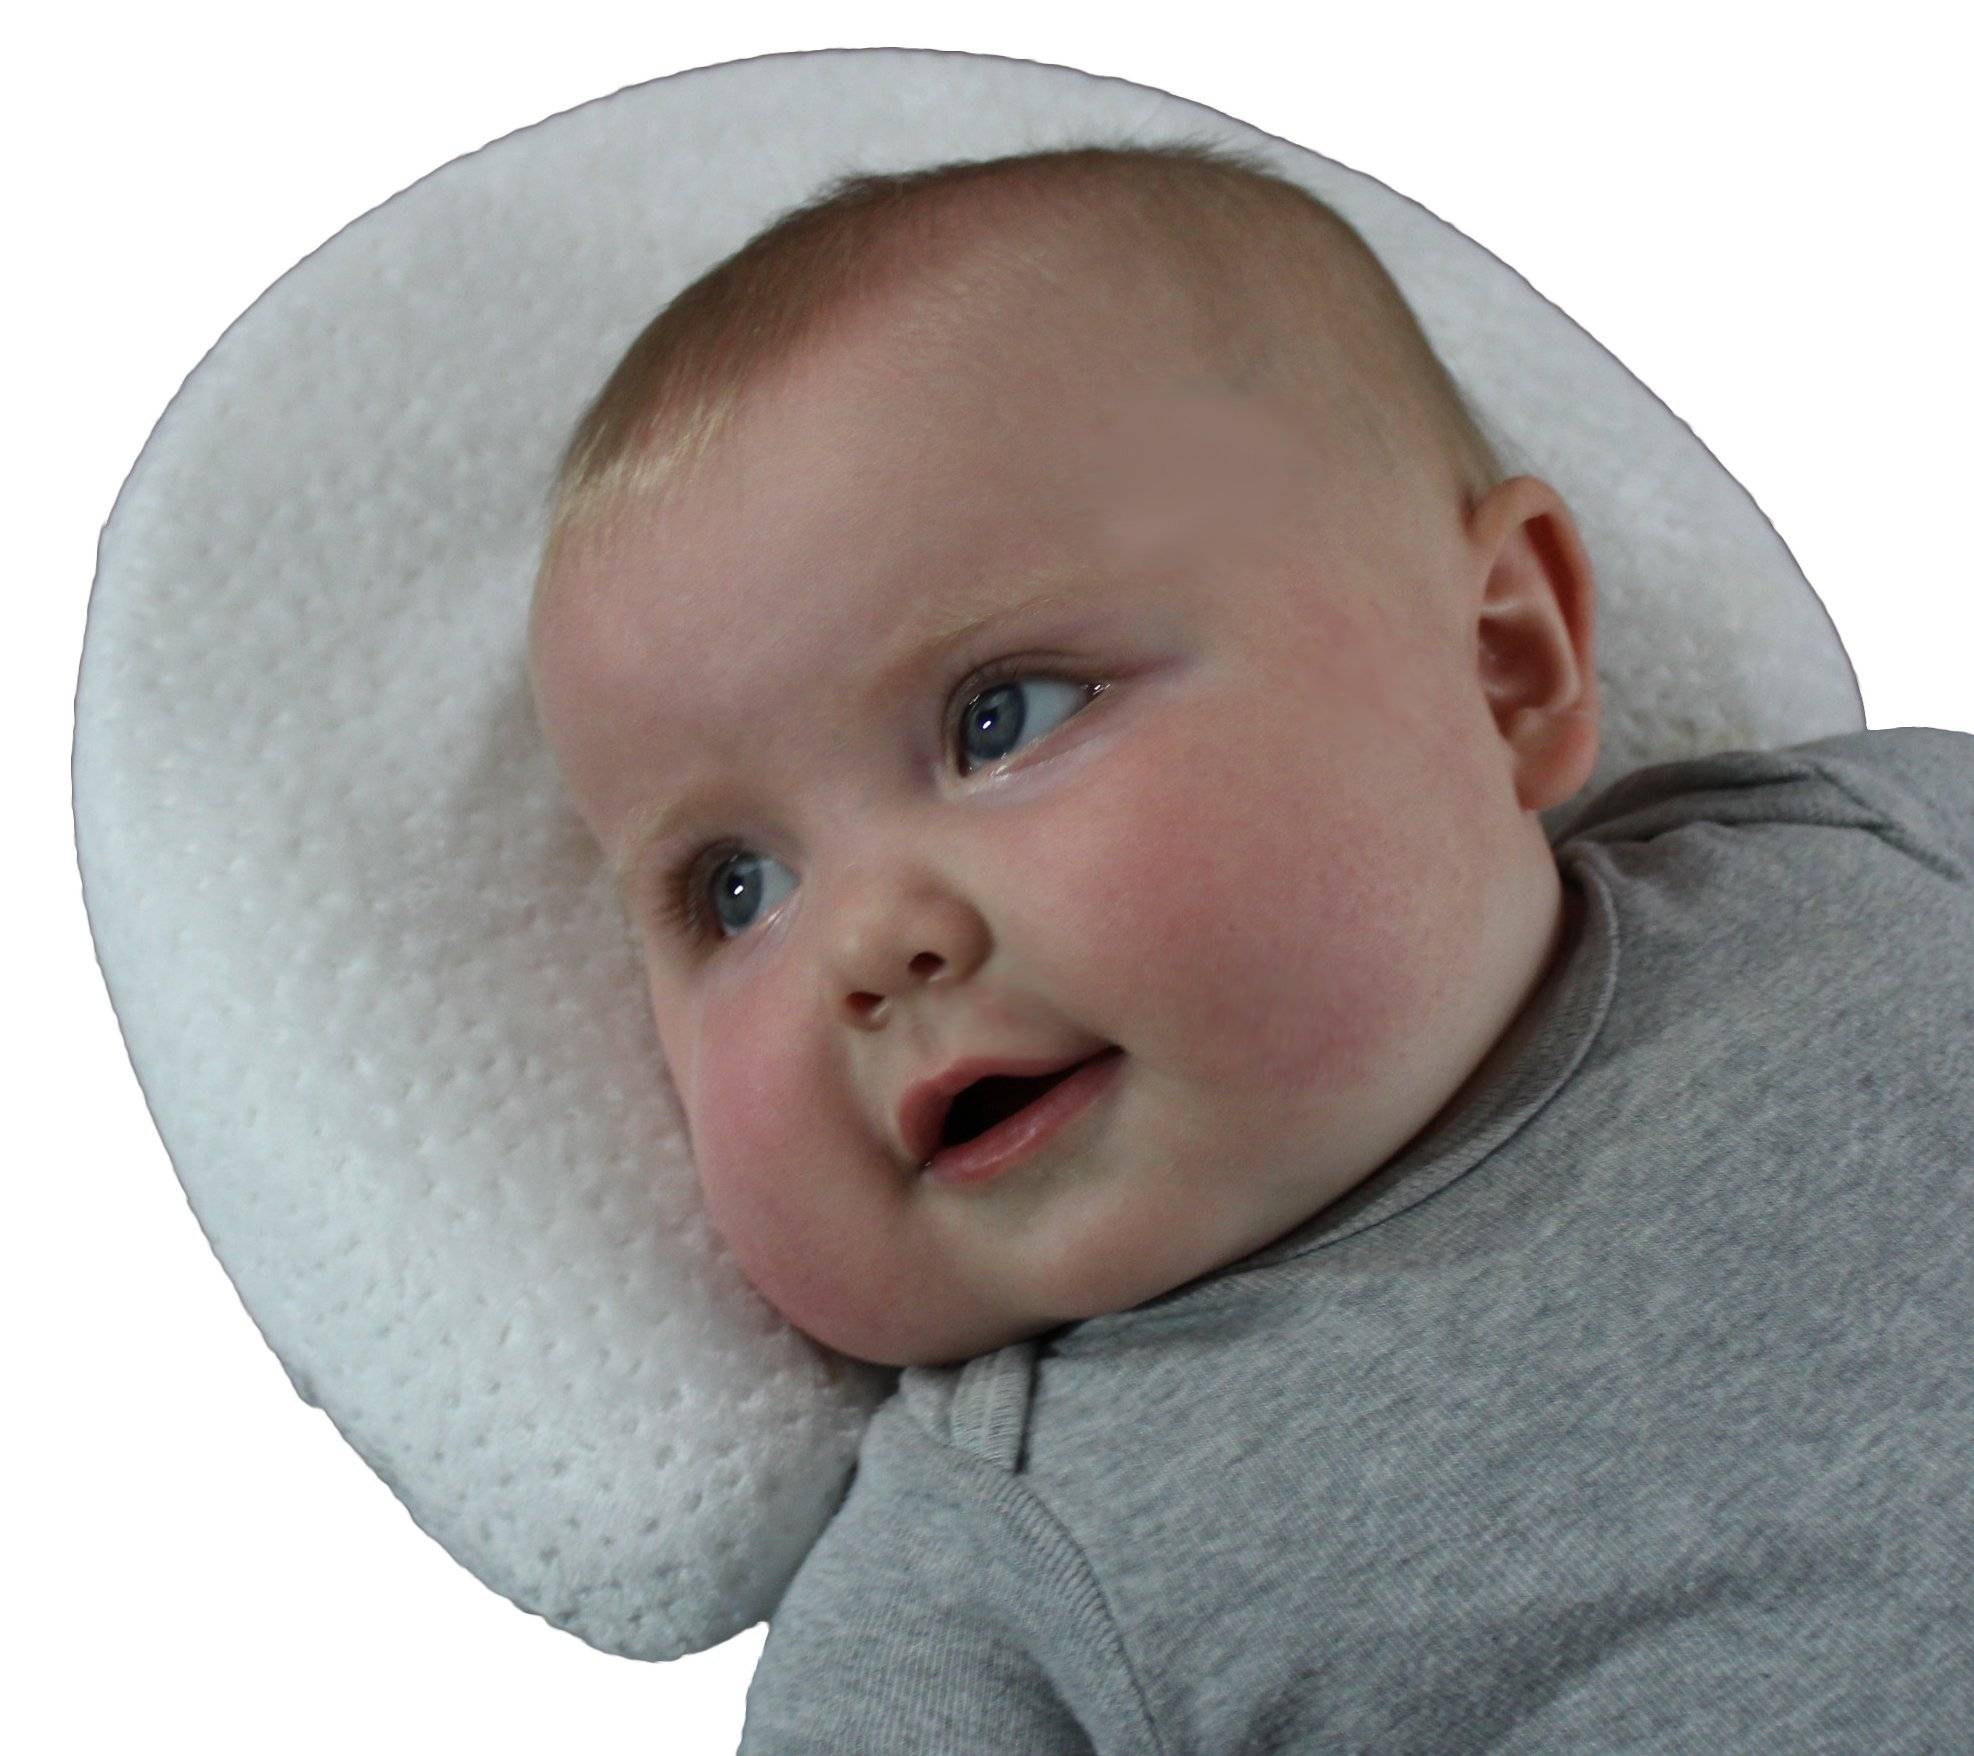 Baby Head Shaping Memory Foam Pillow & Pillowcase. Luxury Baby Shower Gift to KEEP a baby's head round. Prevent Plagiocephaly. (Extra Pillowcase) by Baby Love USA (Image #4)